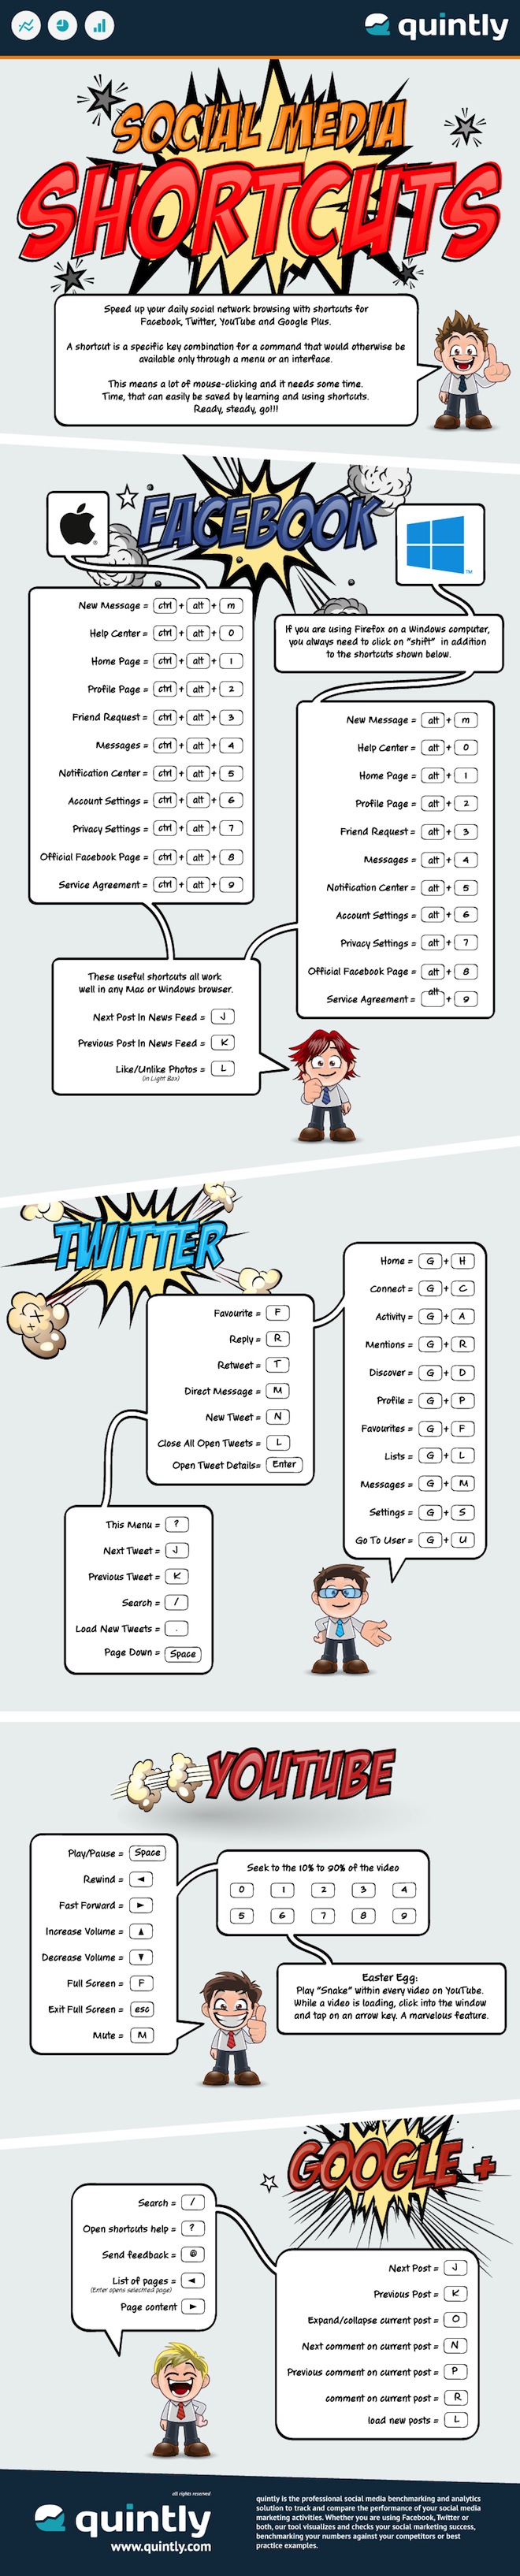 quintly_infographic_social_media_shortcuts